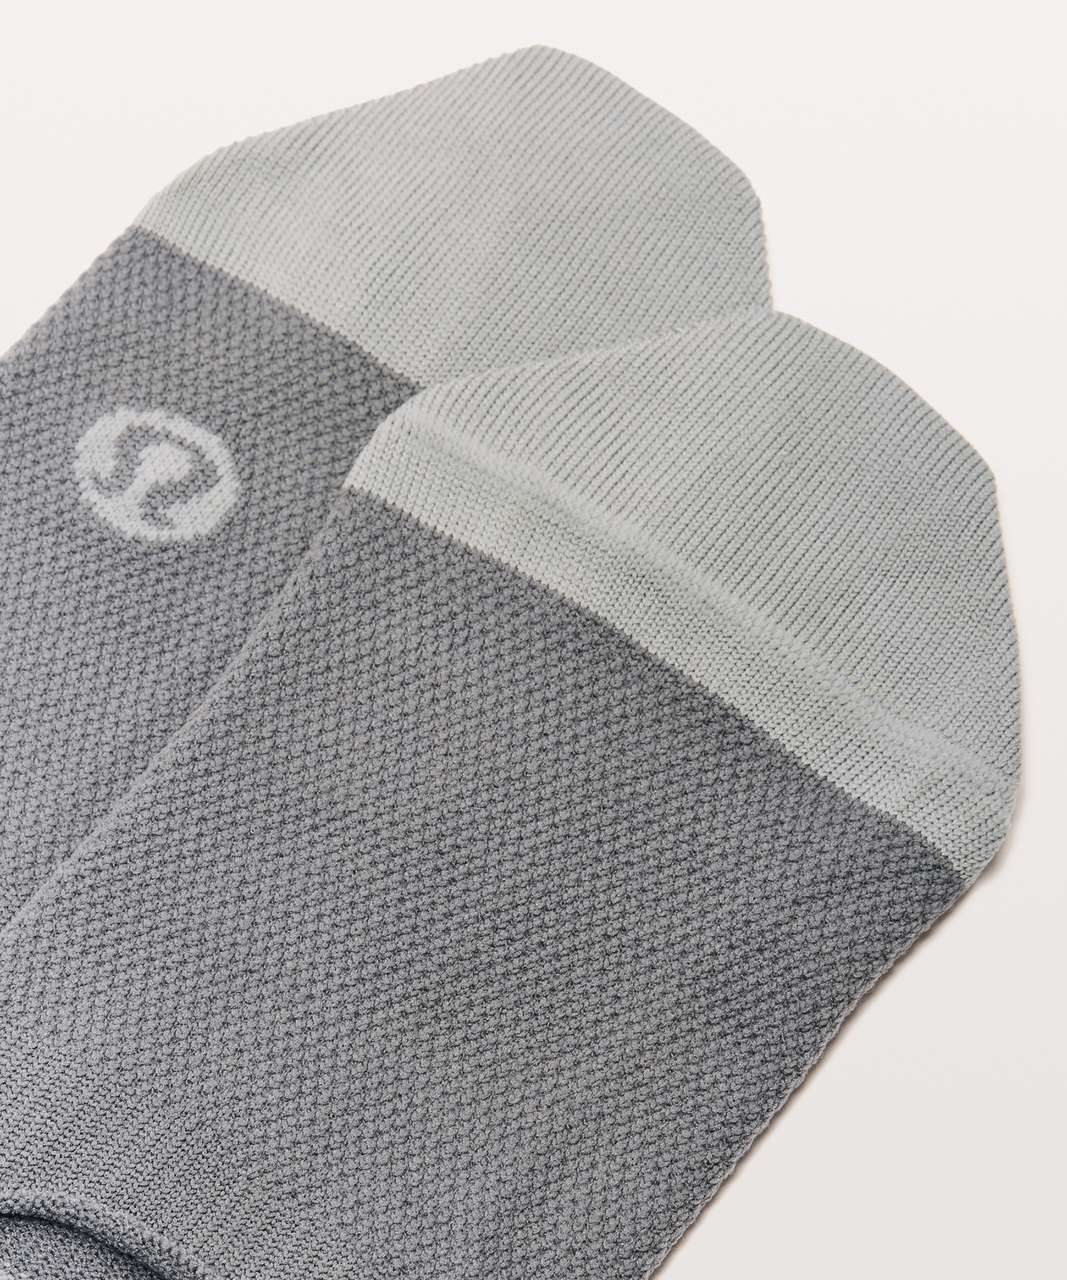 Lululemon No Sock Sock - Asphalt Grey / Light Cast